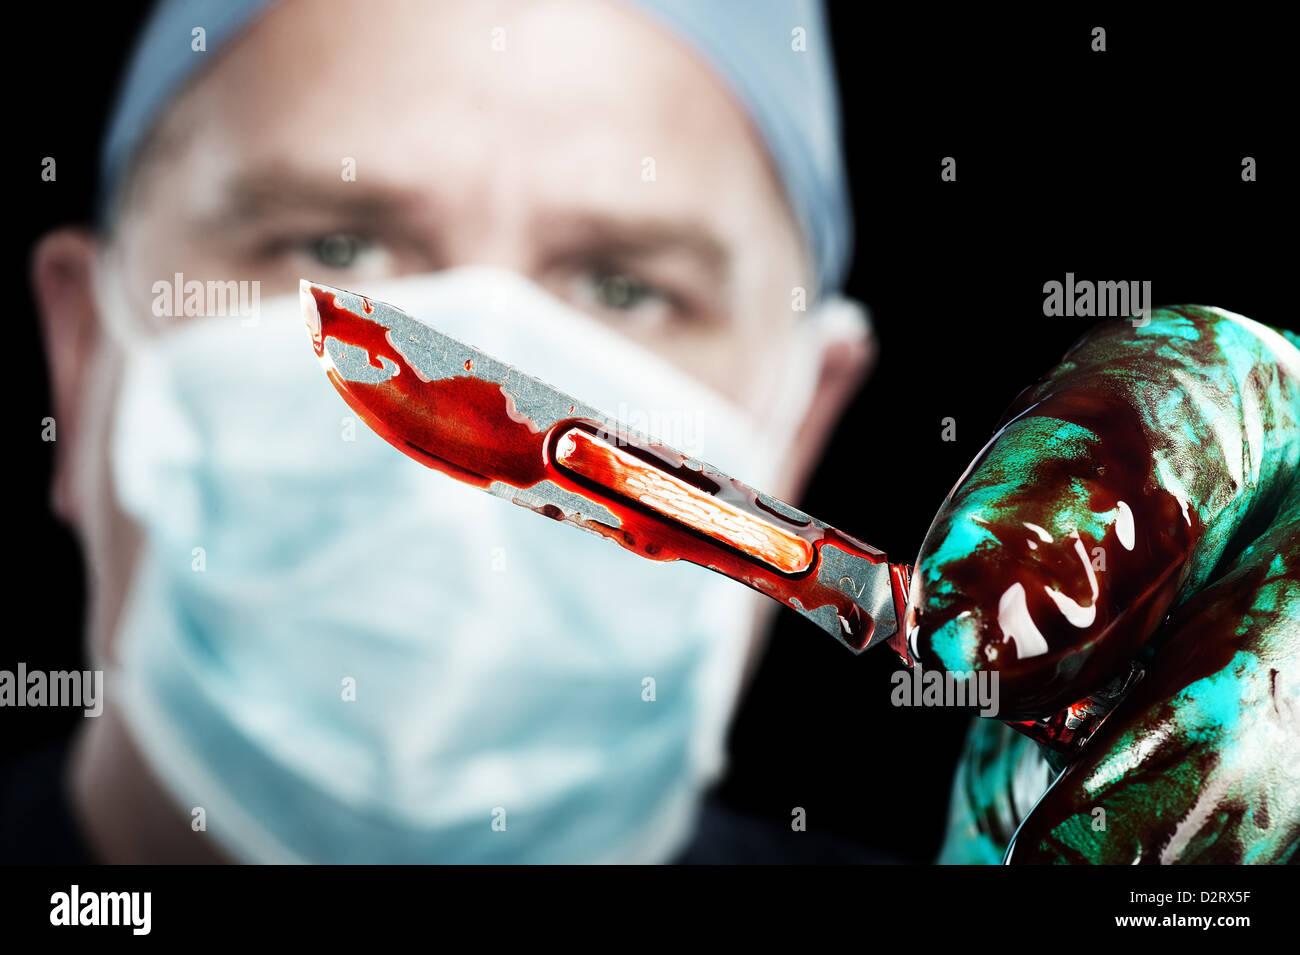 A male surgeon holds up a sharp, bloody scalpel during surgery - Stock Image